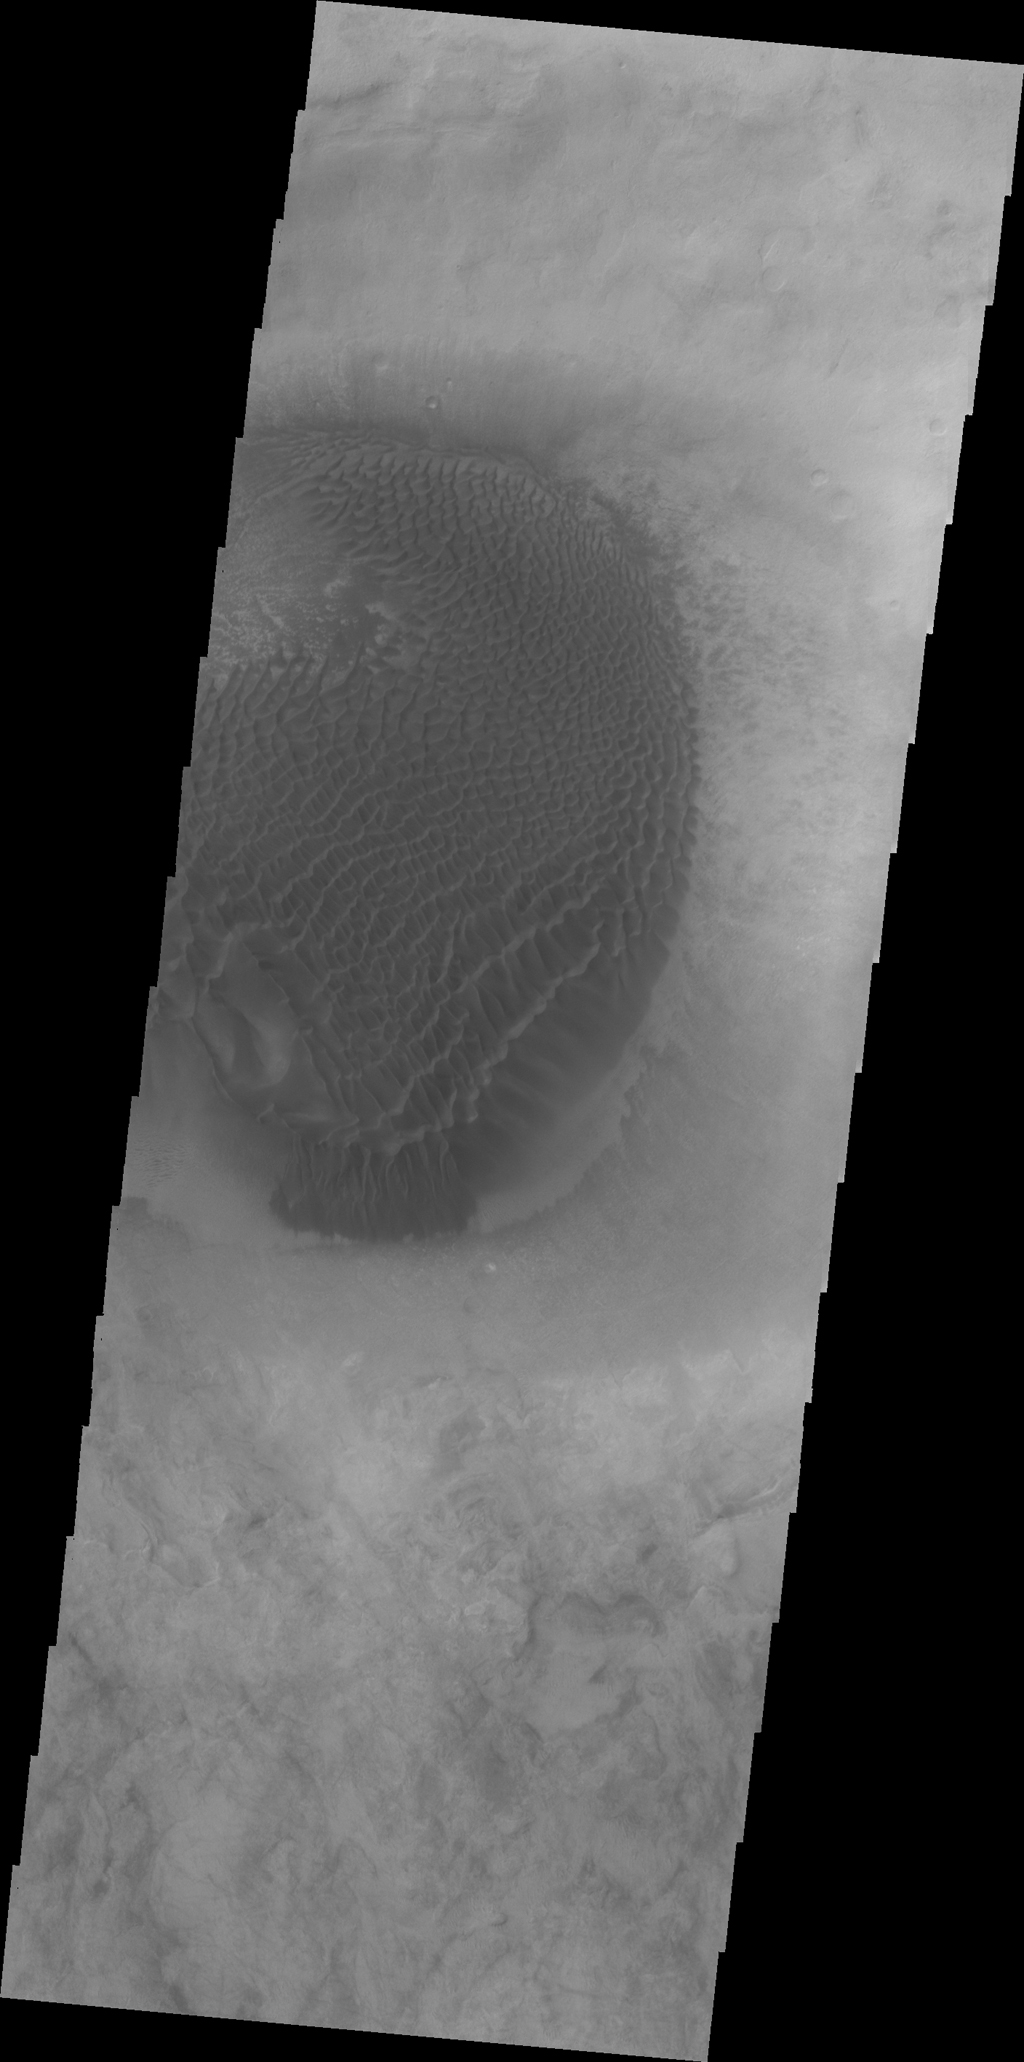 A large mound of sand and dune forms are located on the floor of an unnamed crater south of Rabe Crater in Noachis Terra as seen by NASA's 2001 Mars Odyssey spacecraft.